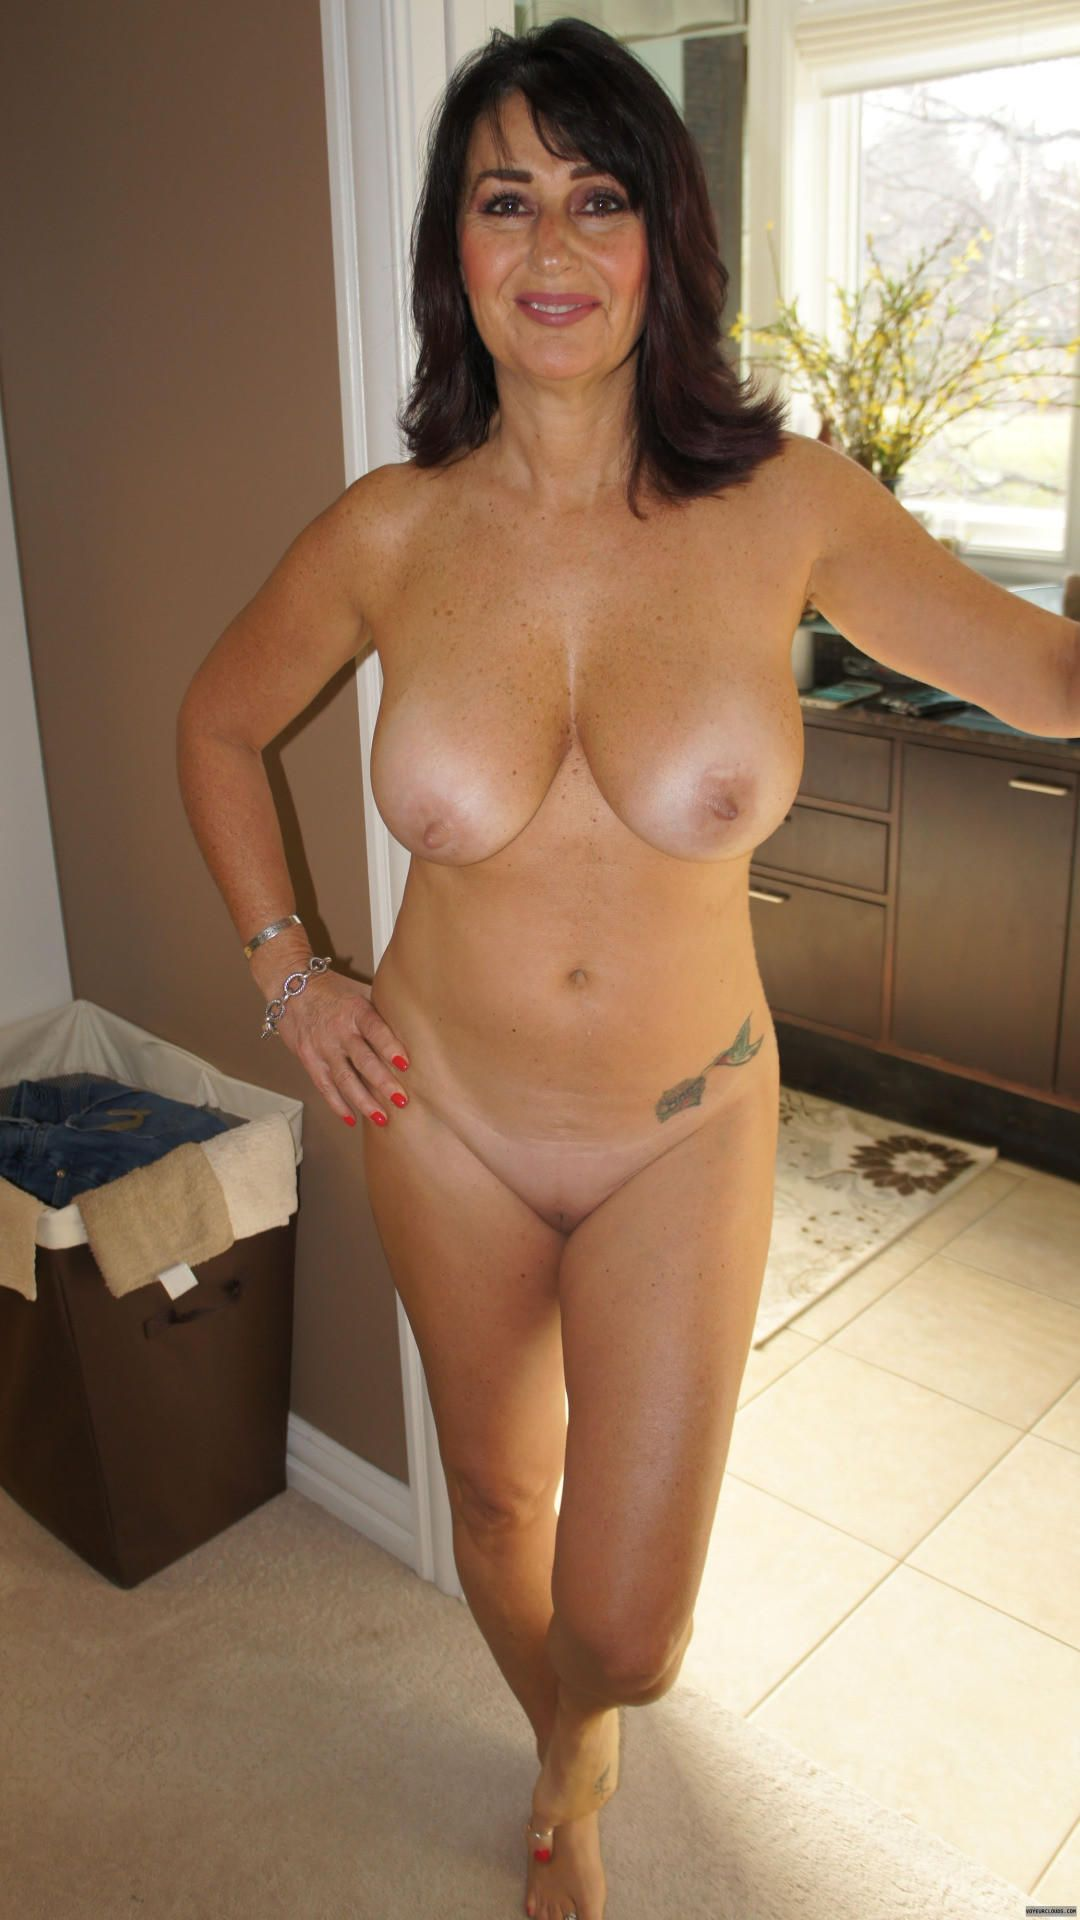 [Amateur MILF] Welcoming smile